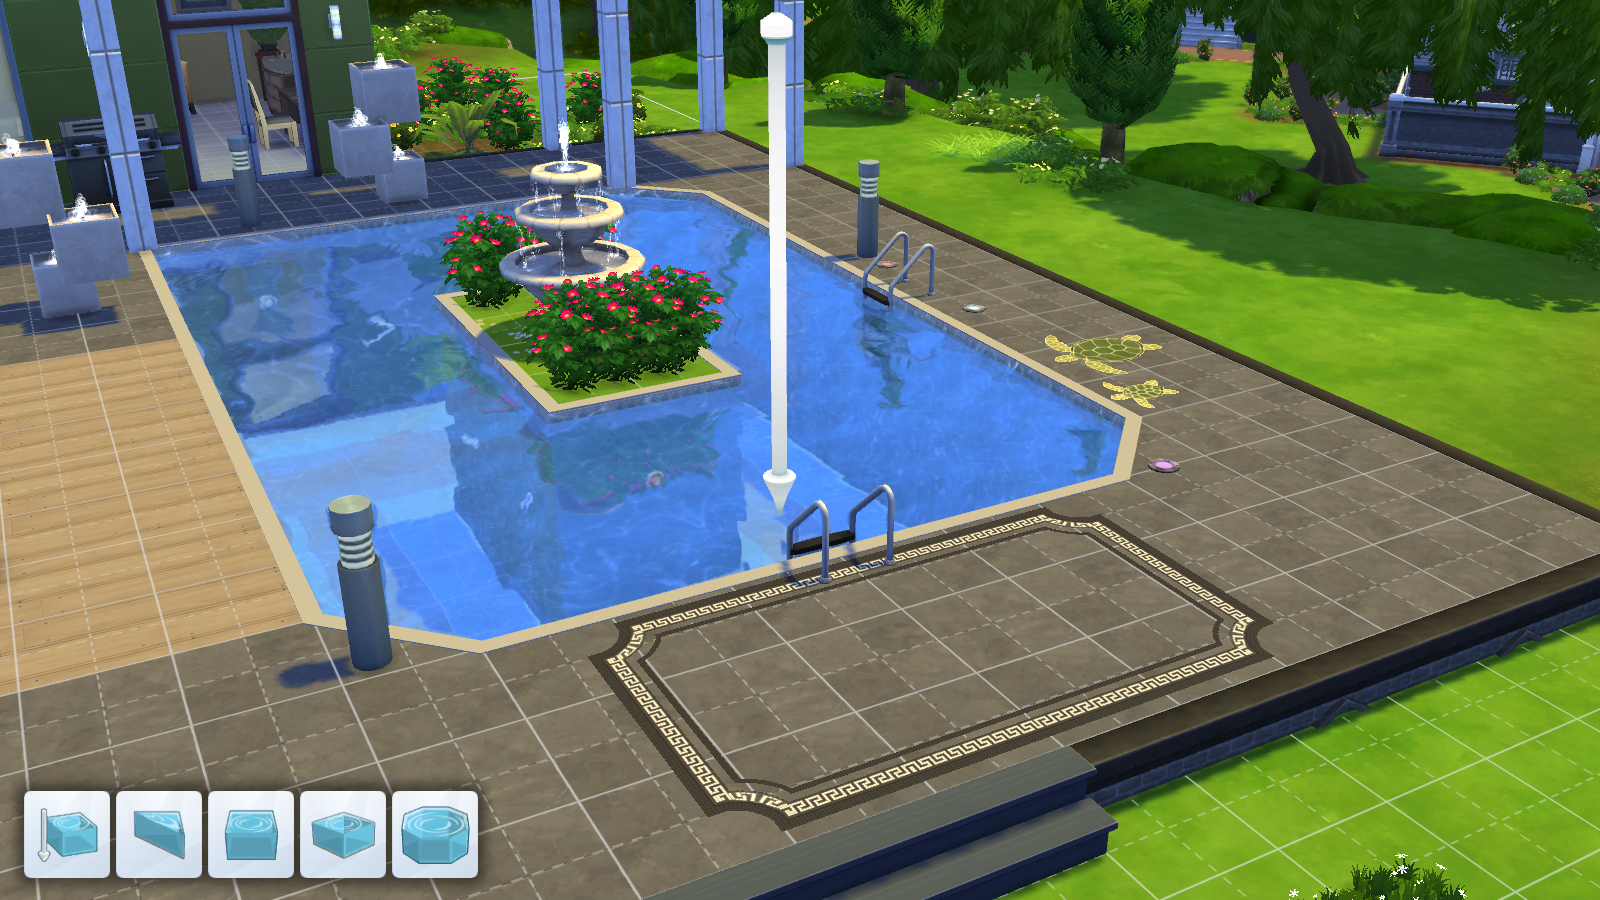 The sims 4 build mode simcitizens for Pool designs sims 4